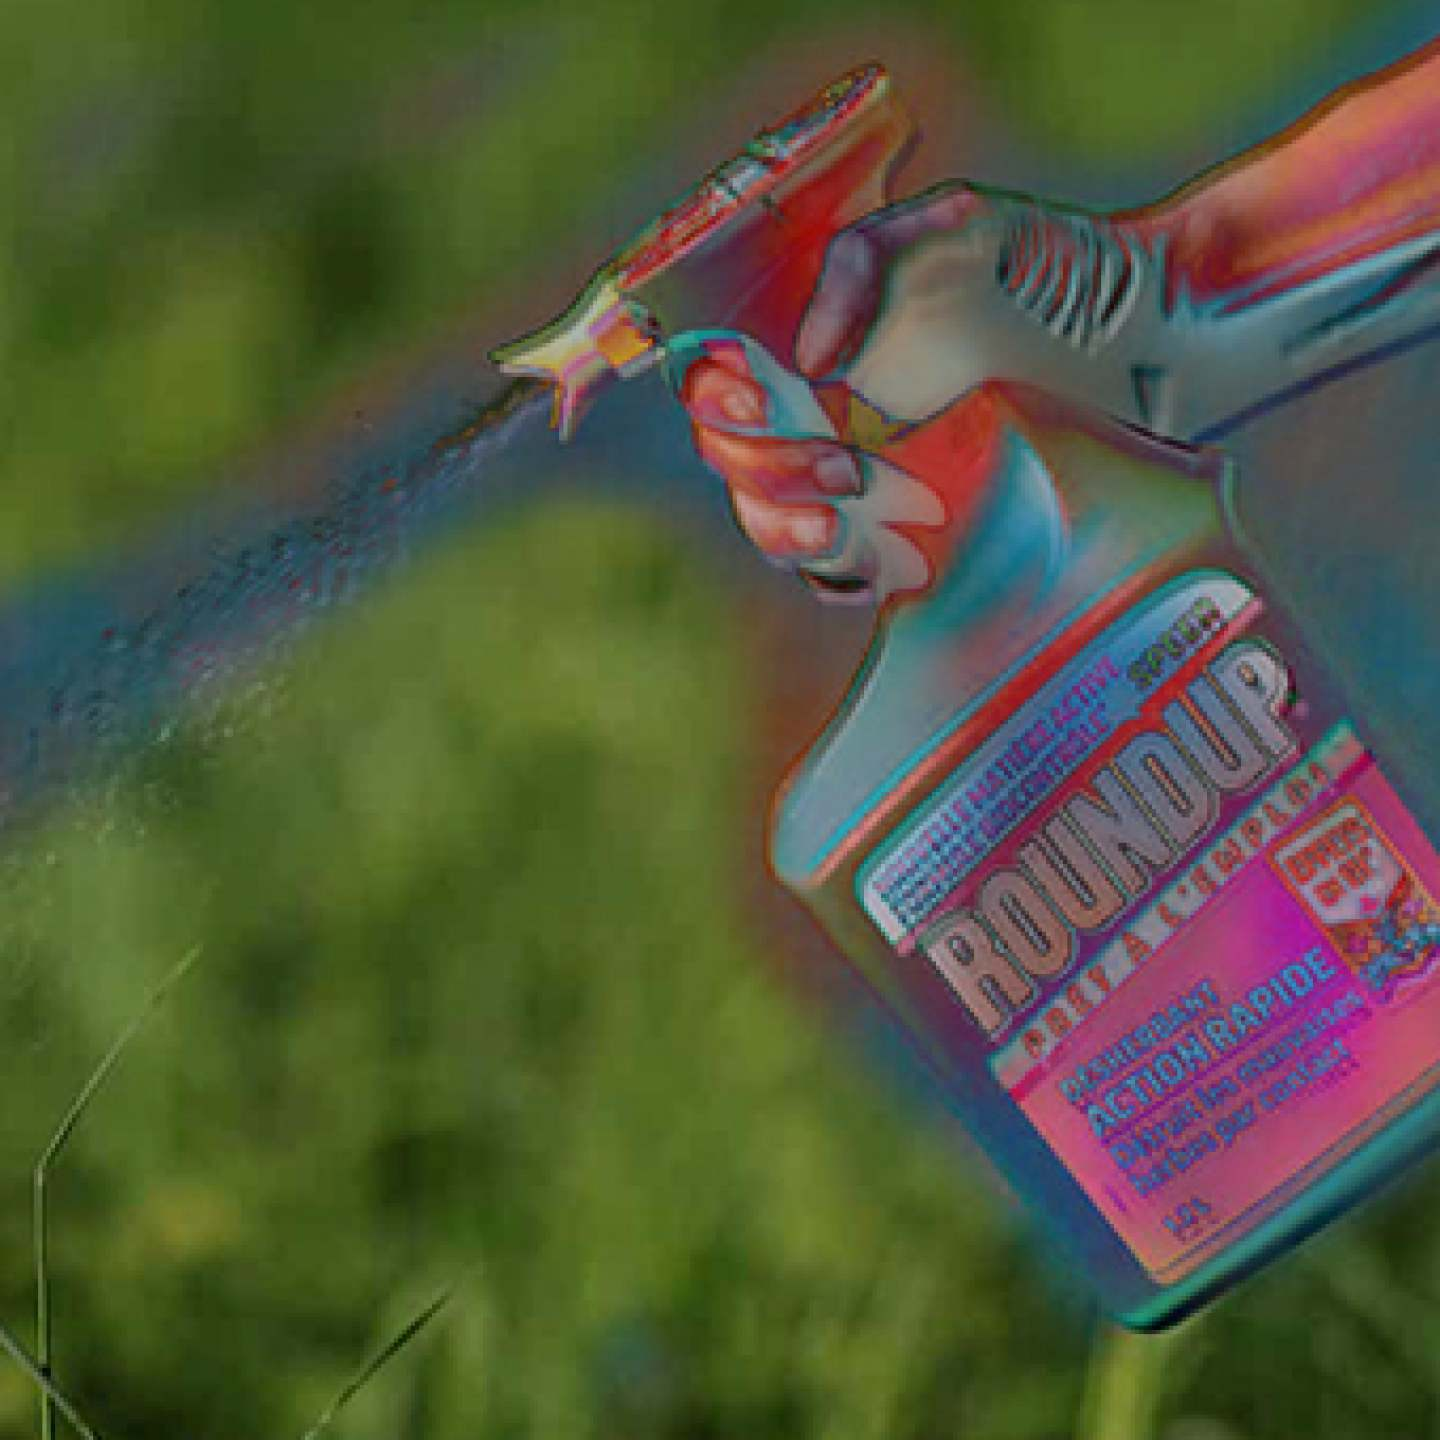 3500_RoundUpSpray-ALTcolors-LAYERED-CROP_340px